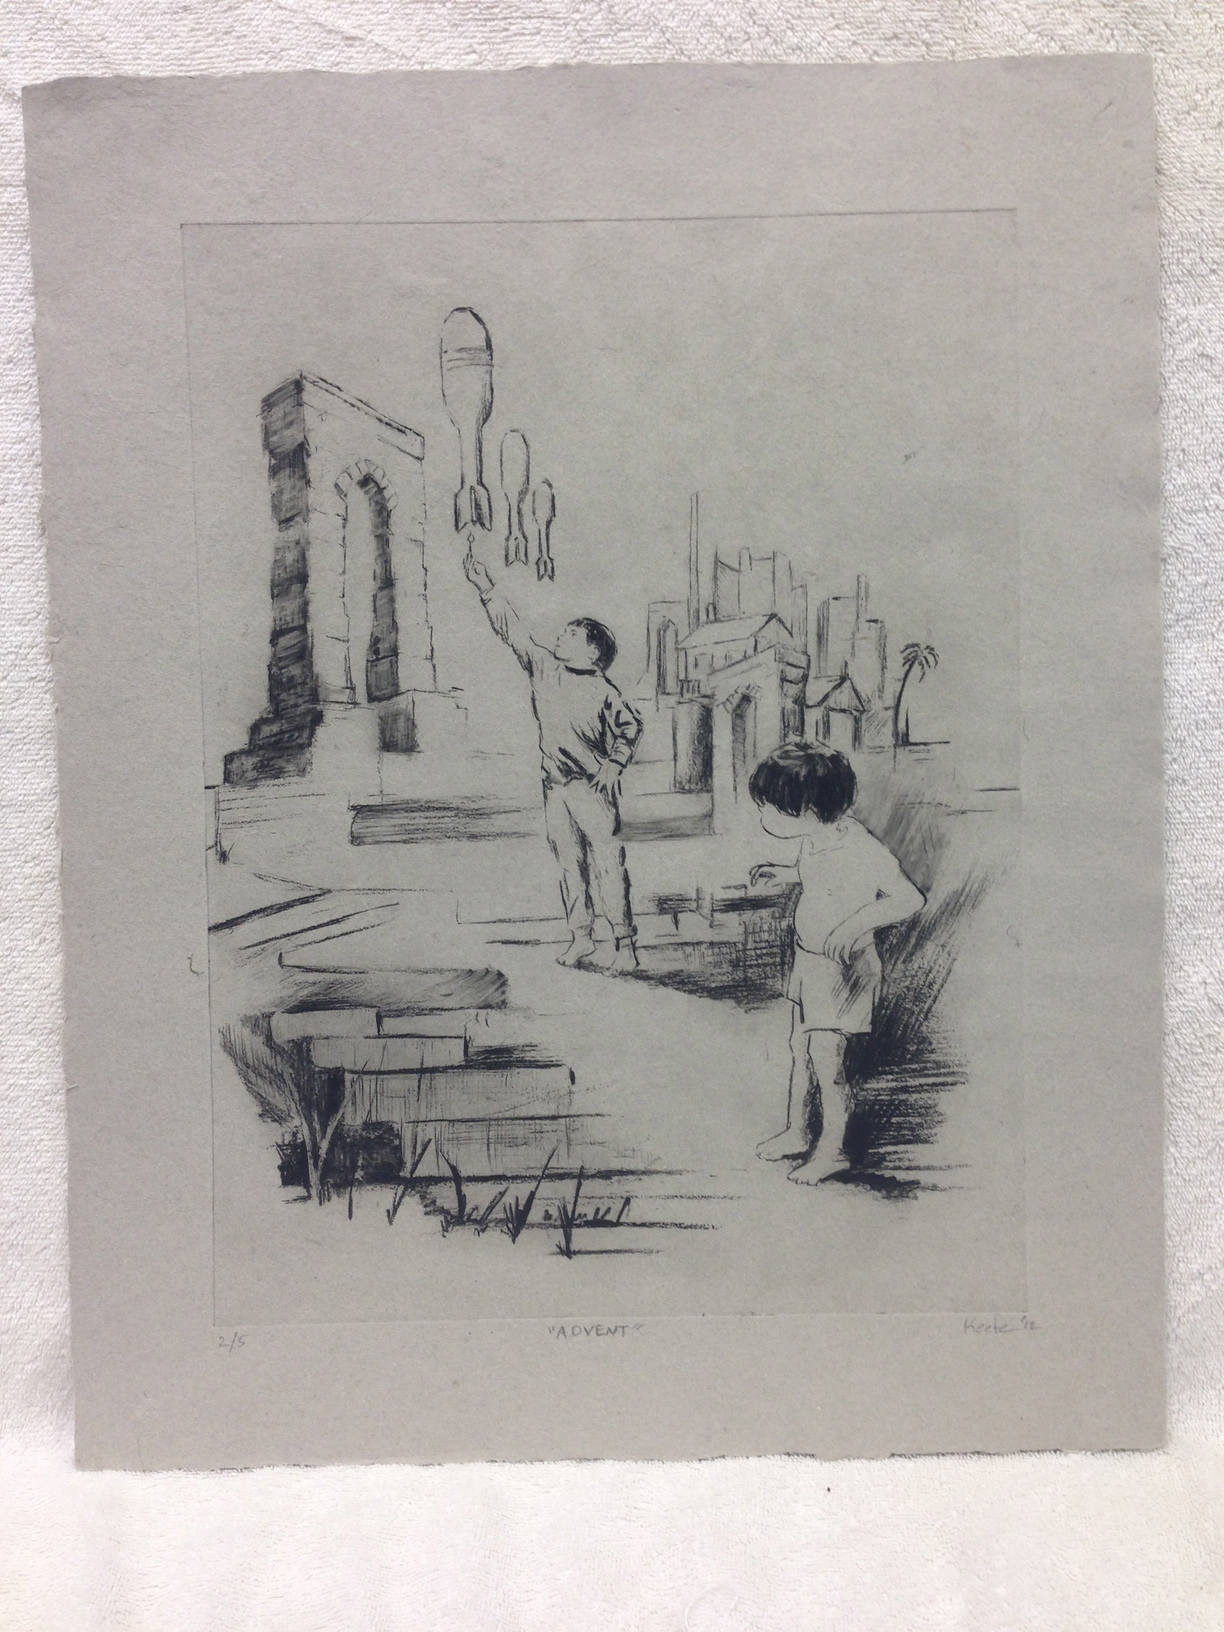 David Keefe Marines -  Iraq _Advent_ 2012 Solar Etching on Handmade Paper from military uniforms 20 x 16 PCNJ IMG_0967.jpg